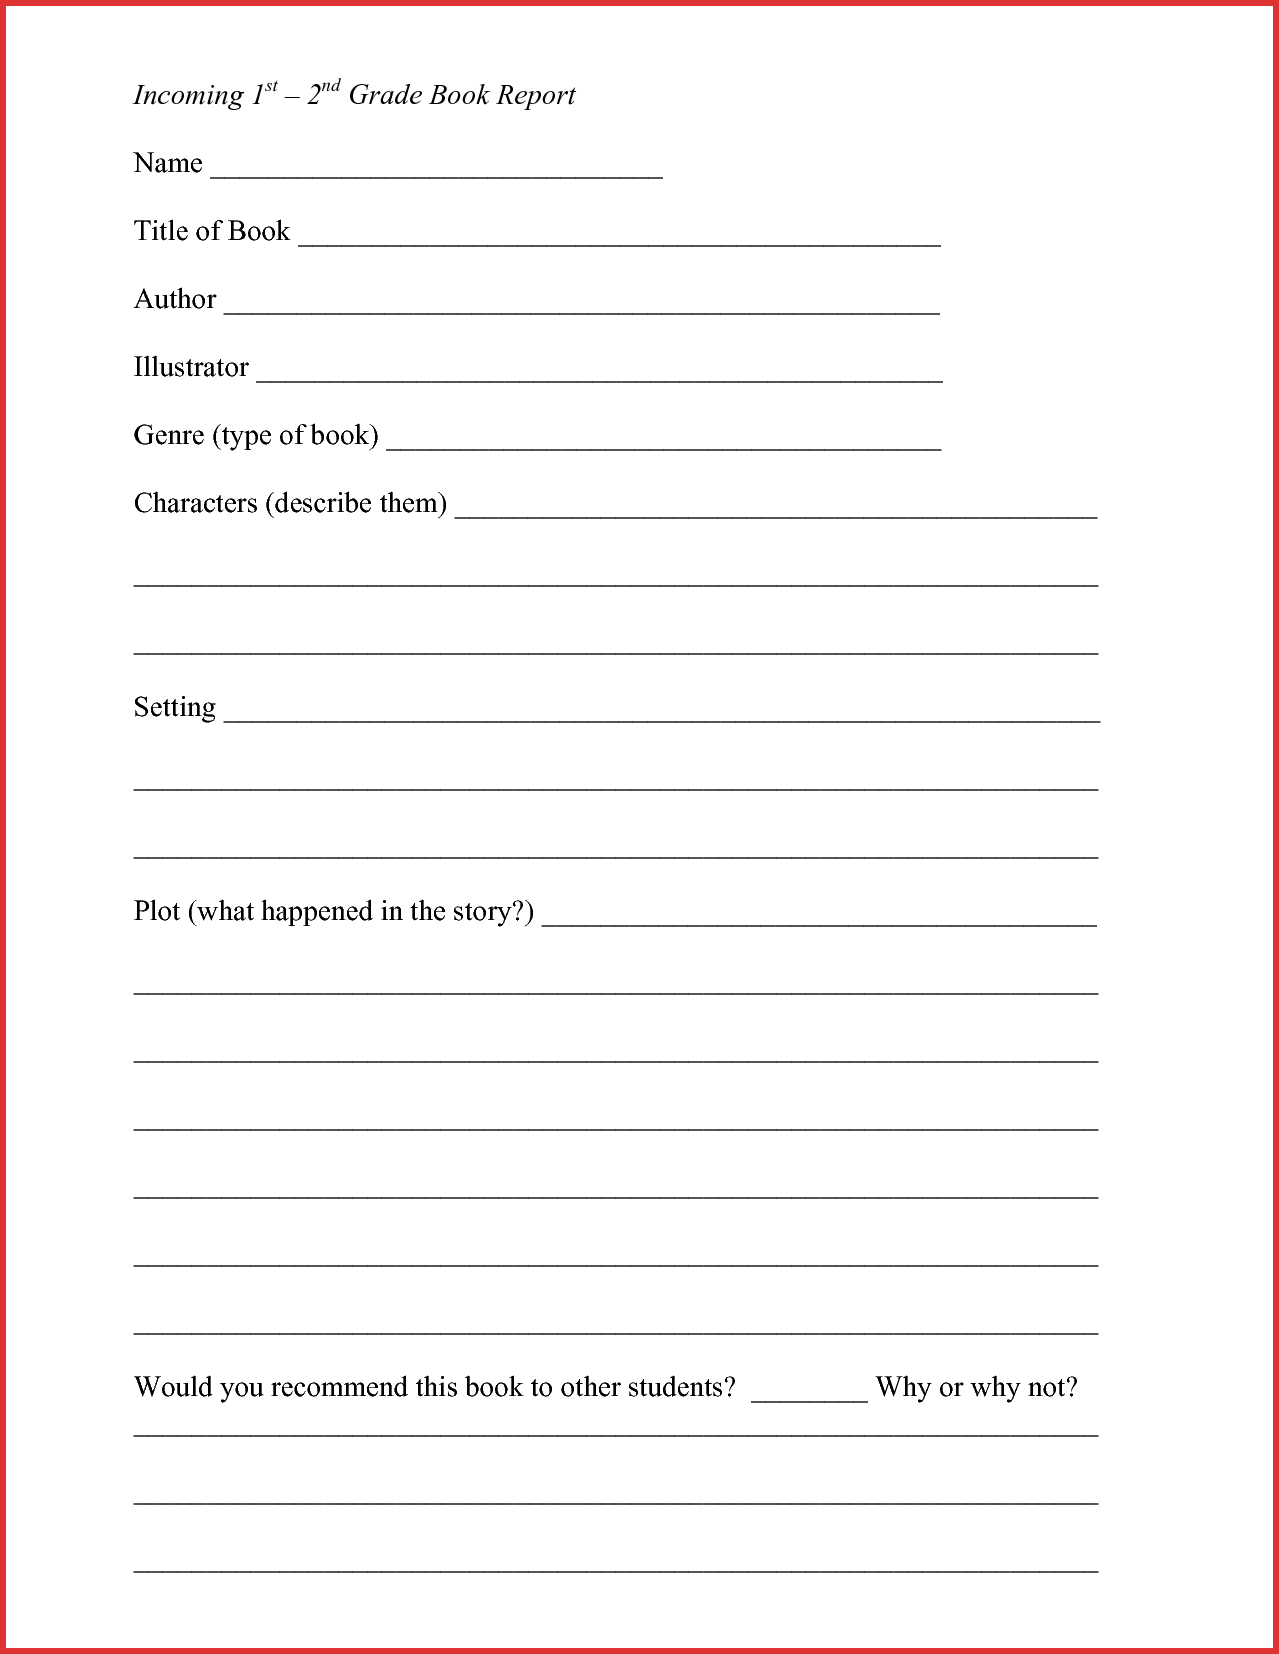 New 2Nd Grade Book Report Form | Job Latter - Free Printable Book Report Forms For Second Grade